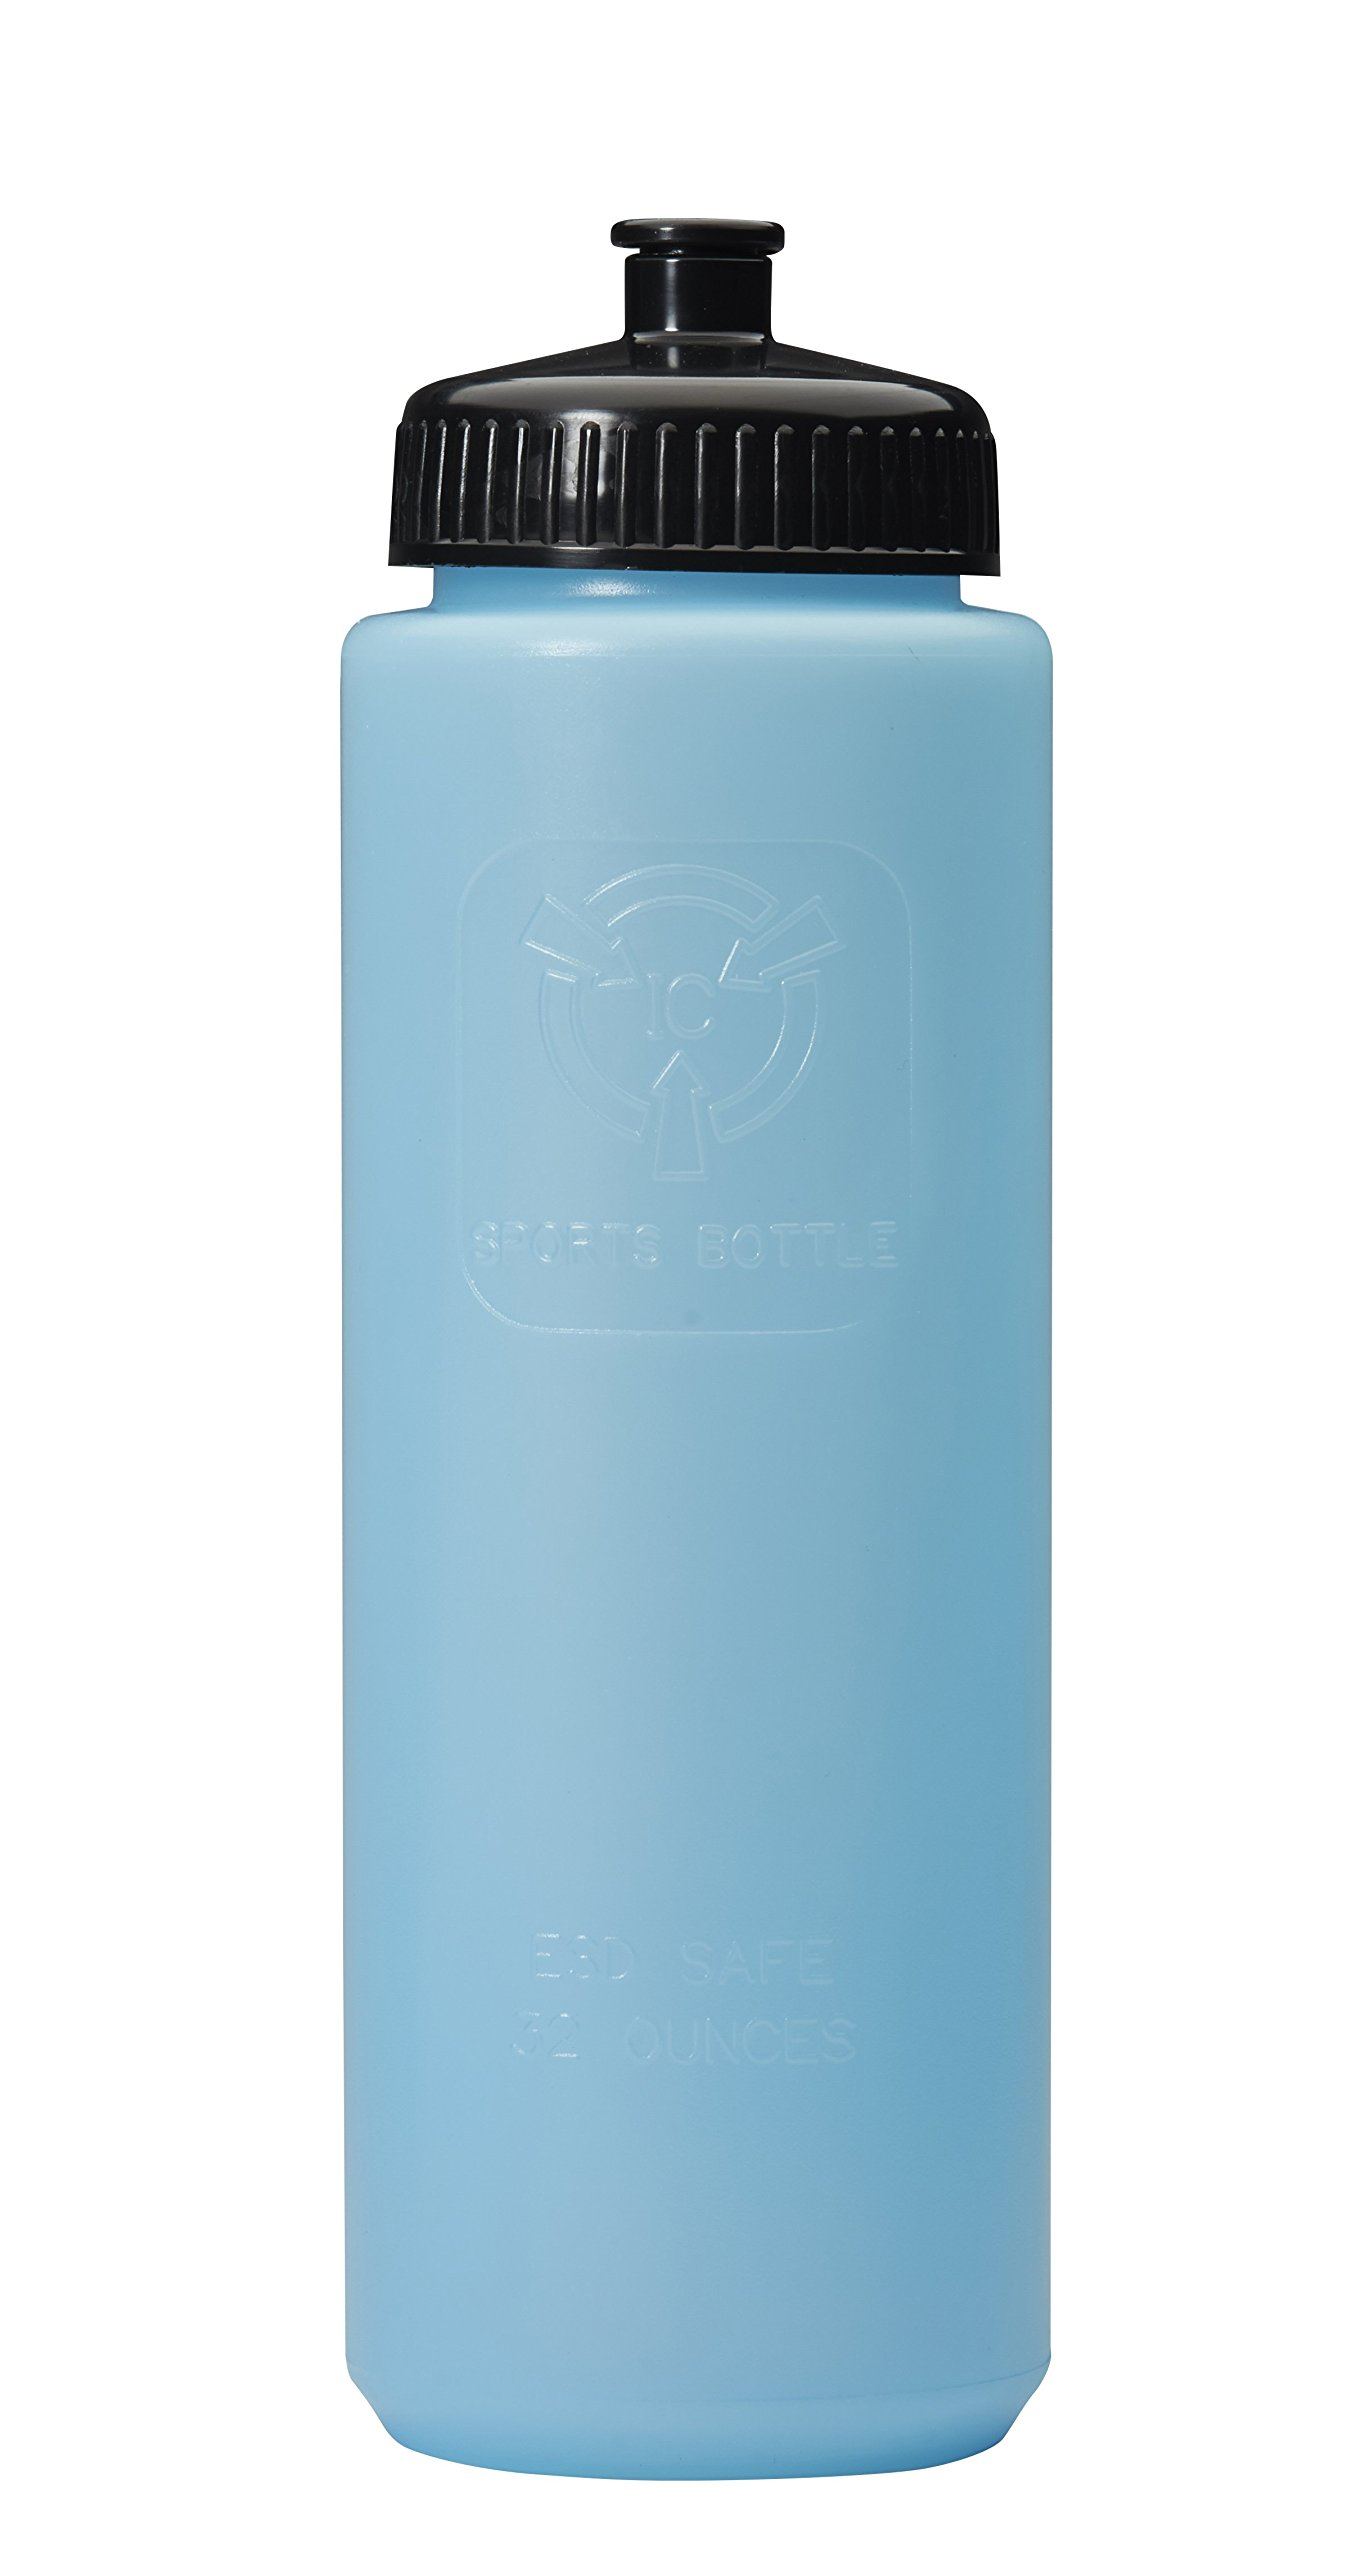 Sports Bottle with Drinking Spout Top, FDA and ESD safe, Static dissipative, Blue Bottle. Average surface resistivity of 10^9 to 10^10. Will dissipate a charge of 5000 volts in +/-2 secs. 32oz 12 Pack by R&R Lotion